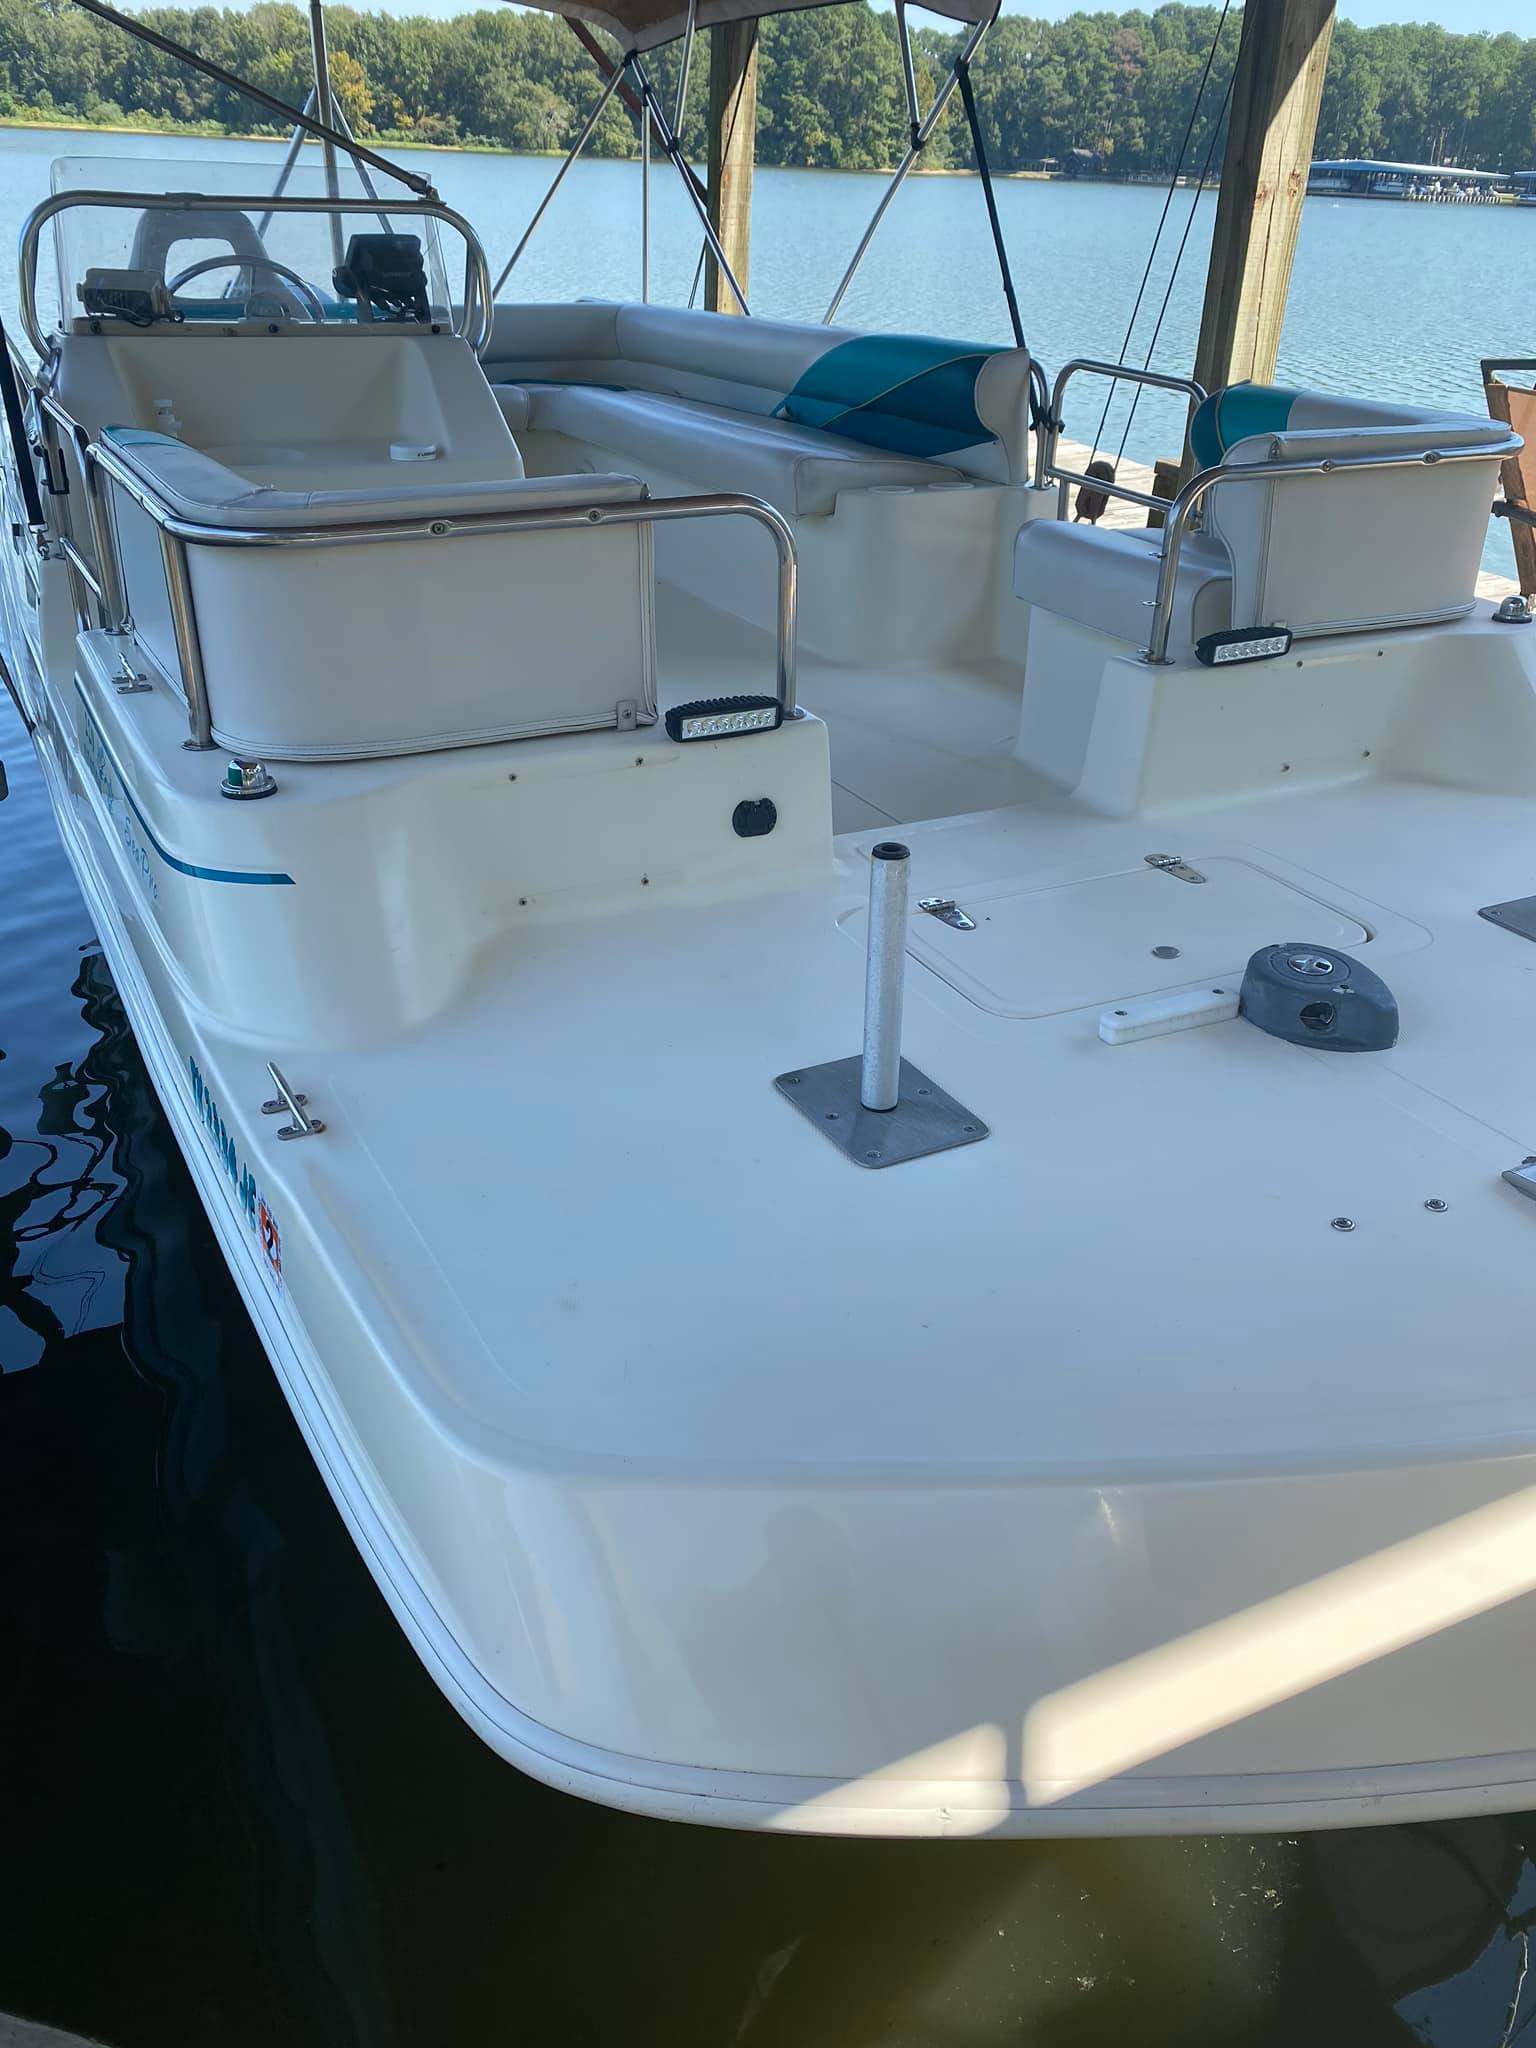 7 Reasons Why Boat Detailing Is Important - Boat Detailing Services